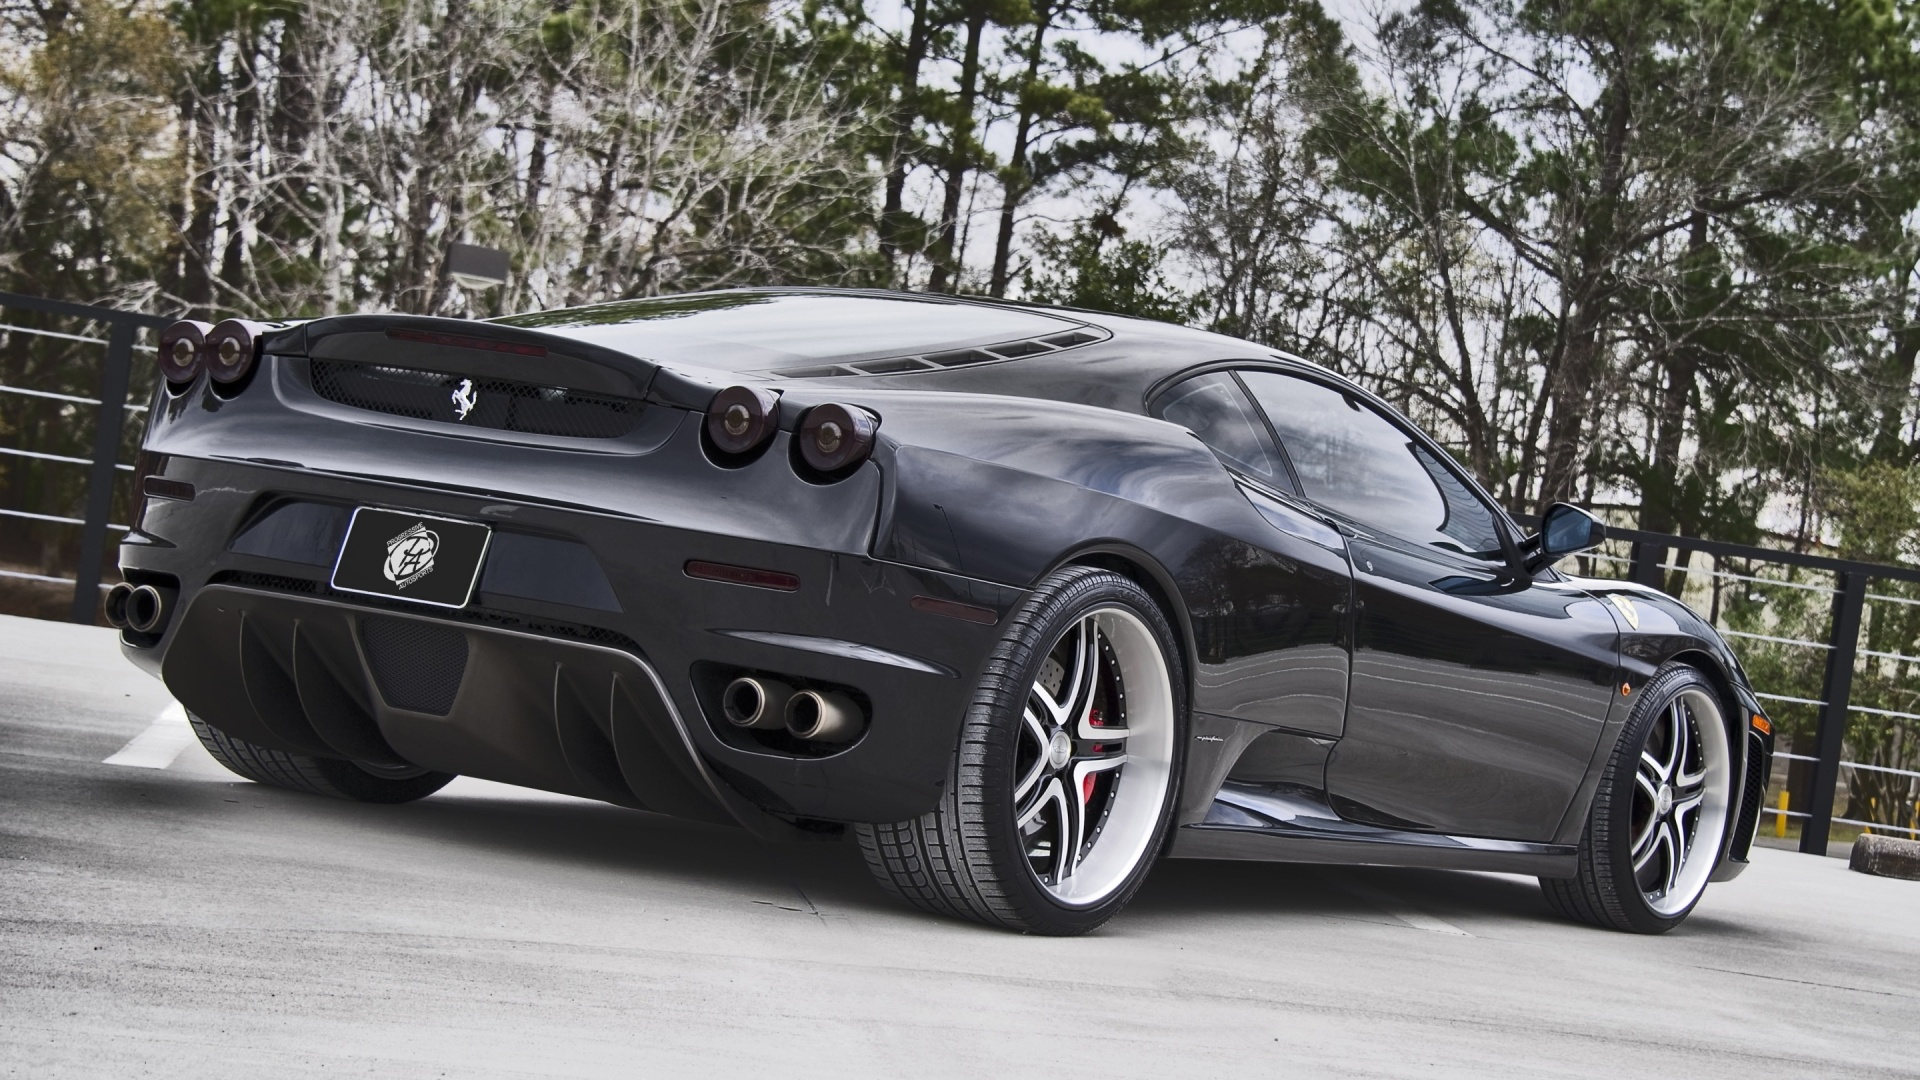 description the wallpaper above is ferrari f430 modified wallpaper in resolution 1920x1080 choose your